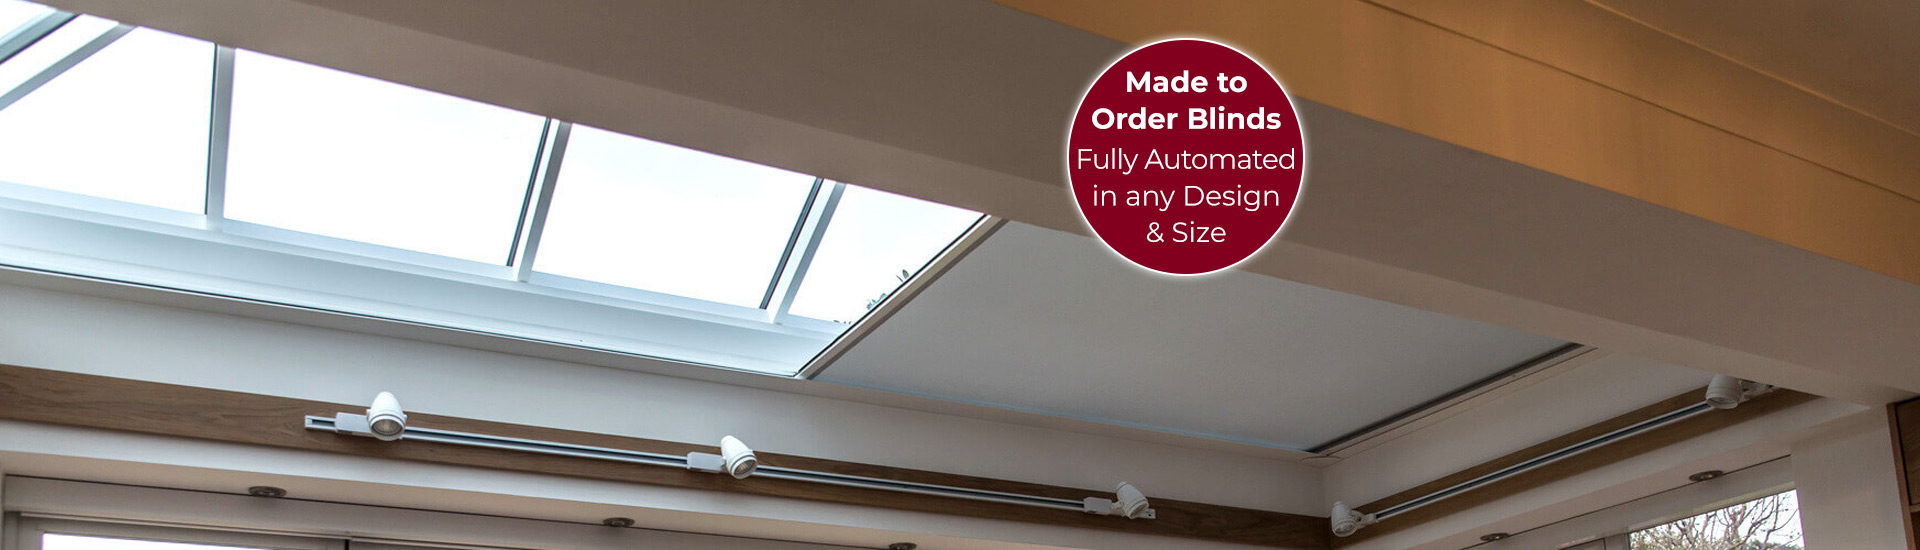 Electric Skylight Blinds with Sticker